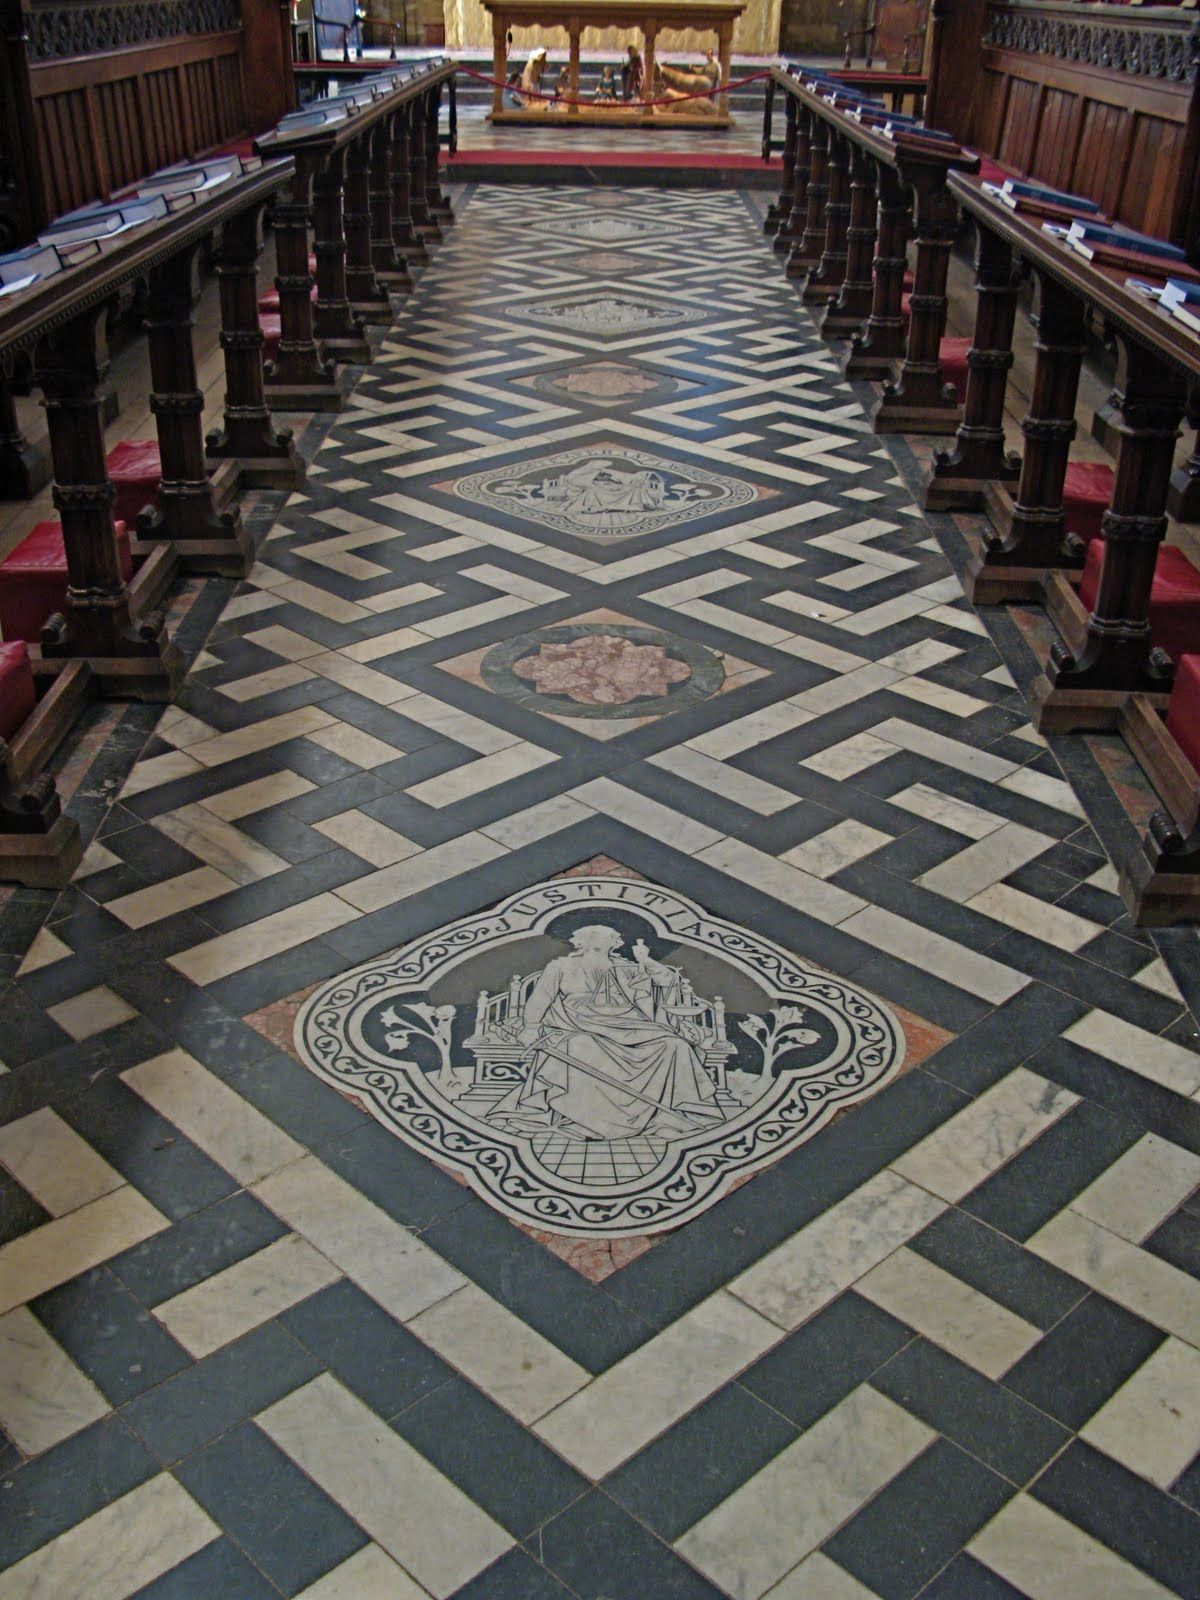 The fylfot swastika in british churches and cathedrals the fylfot swastika in british churches and cathedrals biocorpaavc